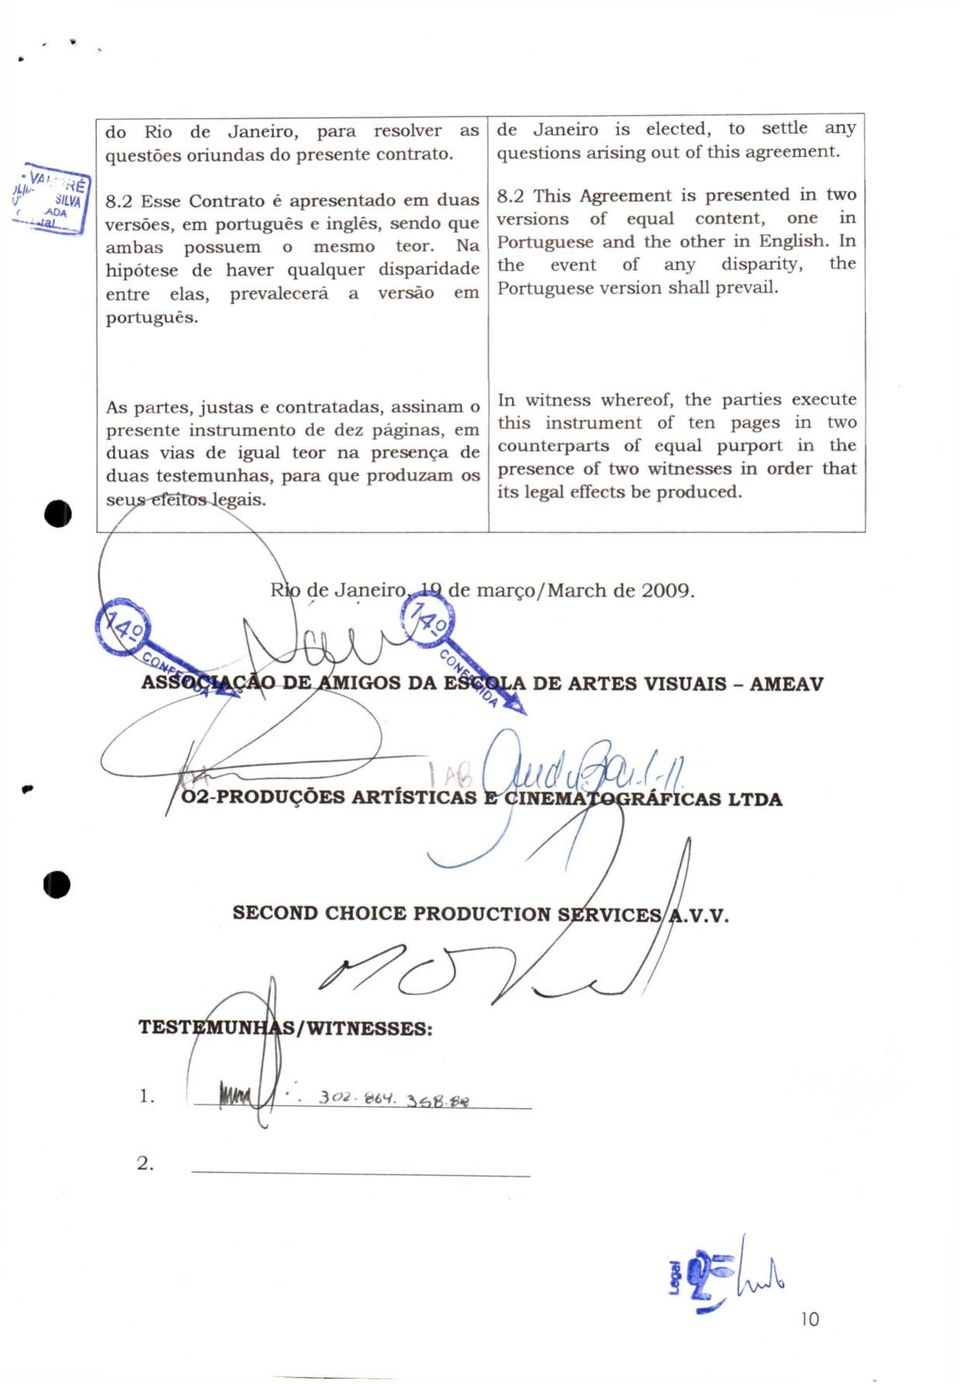 2 This Agreement is presented in two versions of equal content, one in Portuguese and the other in English. In the event of any disparity, the Portuguese version shall prevail.